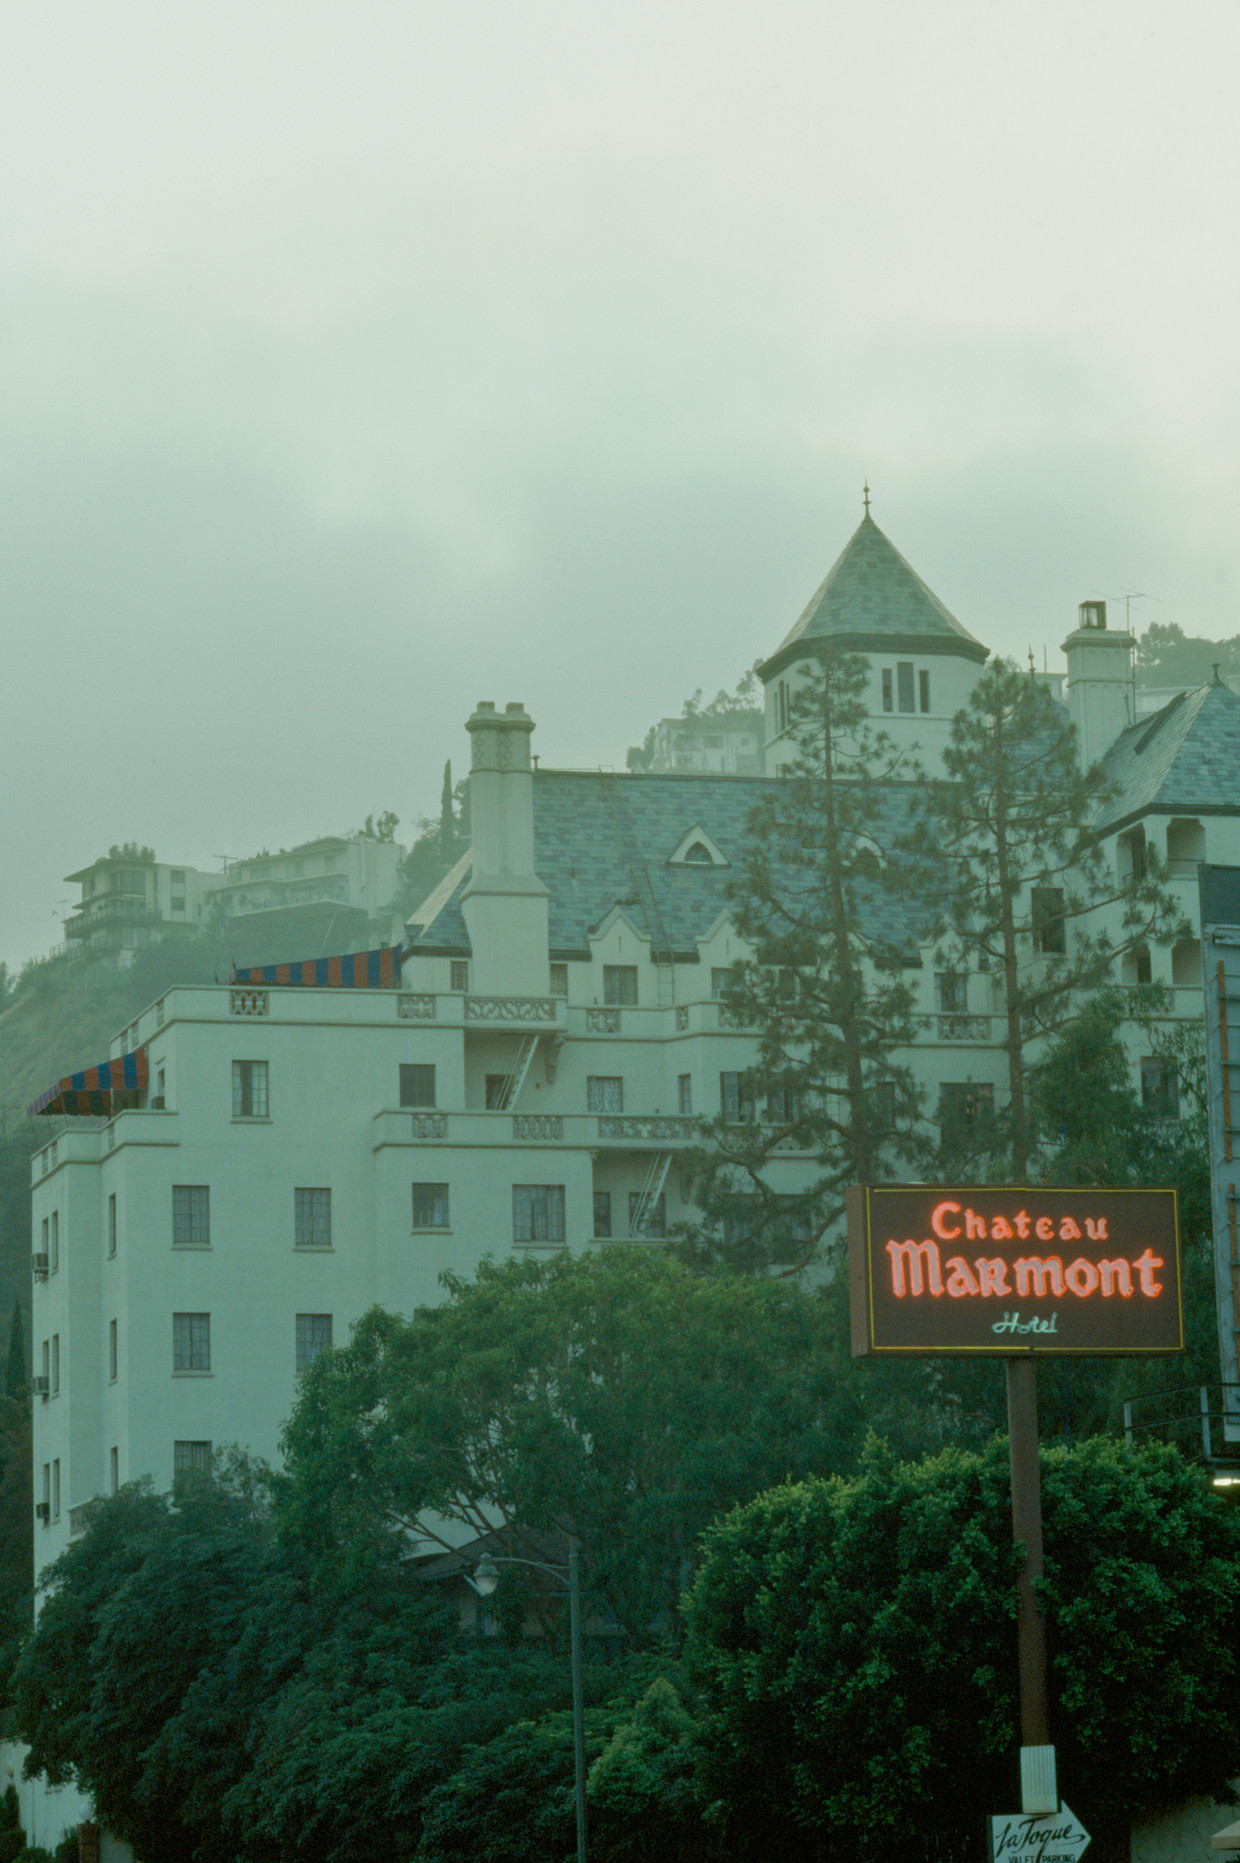 Chateau Marmont in 1991.